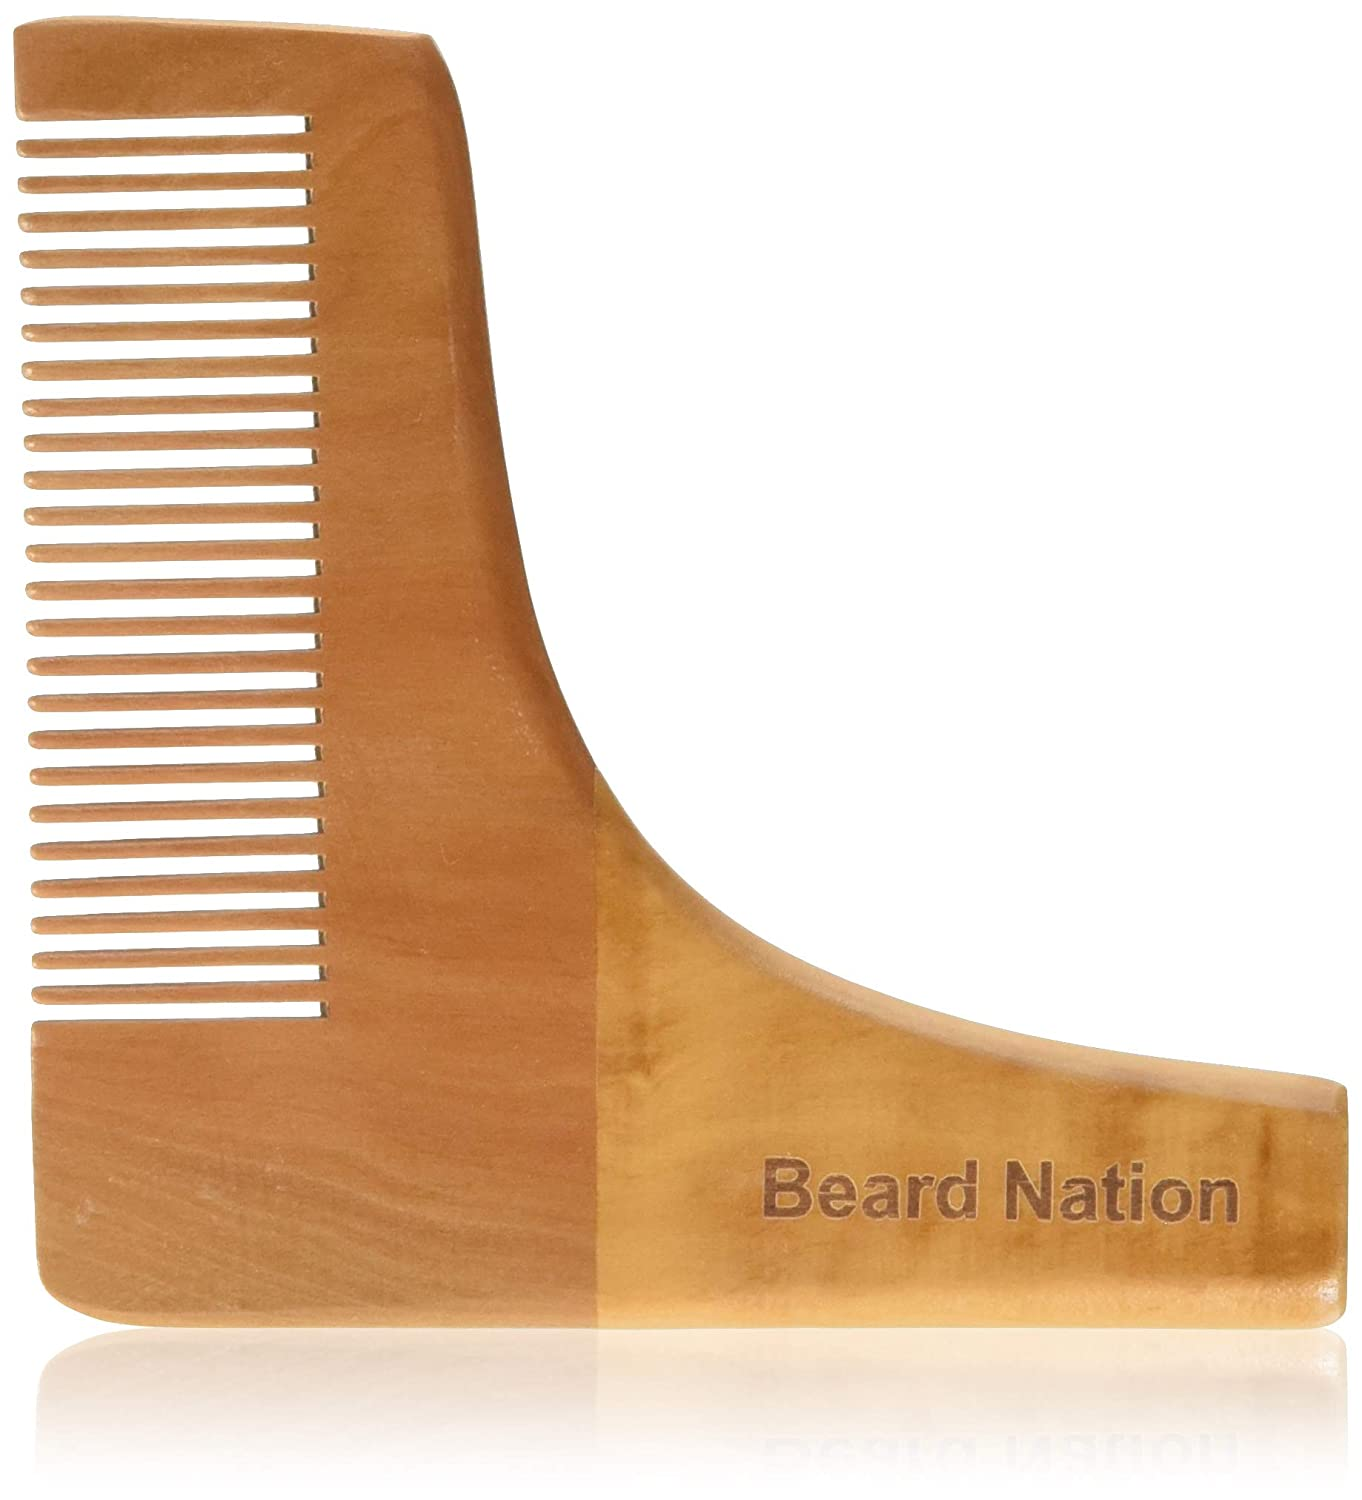 Premium Quality Pear Wood Men's Beard Comb by Beard Nation | Anti-Static, Easily Brush, Shape and Style Your Beard